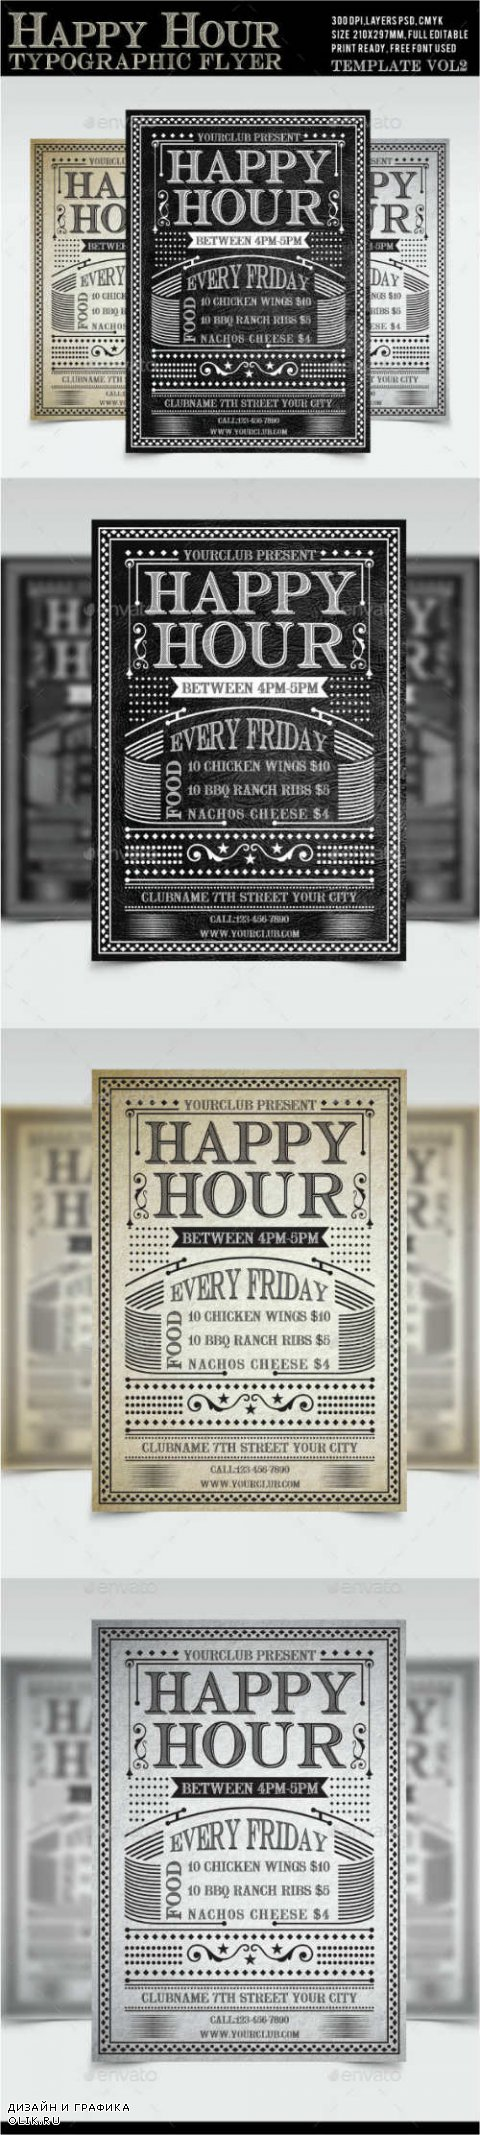 Happy Hour Flyer Vol2 15245139